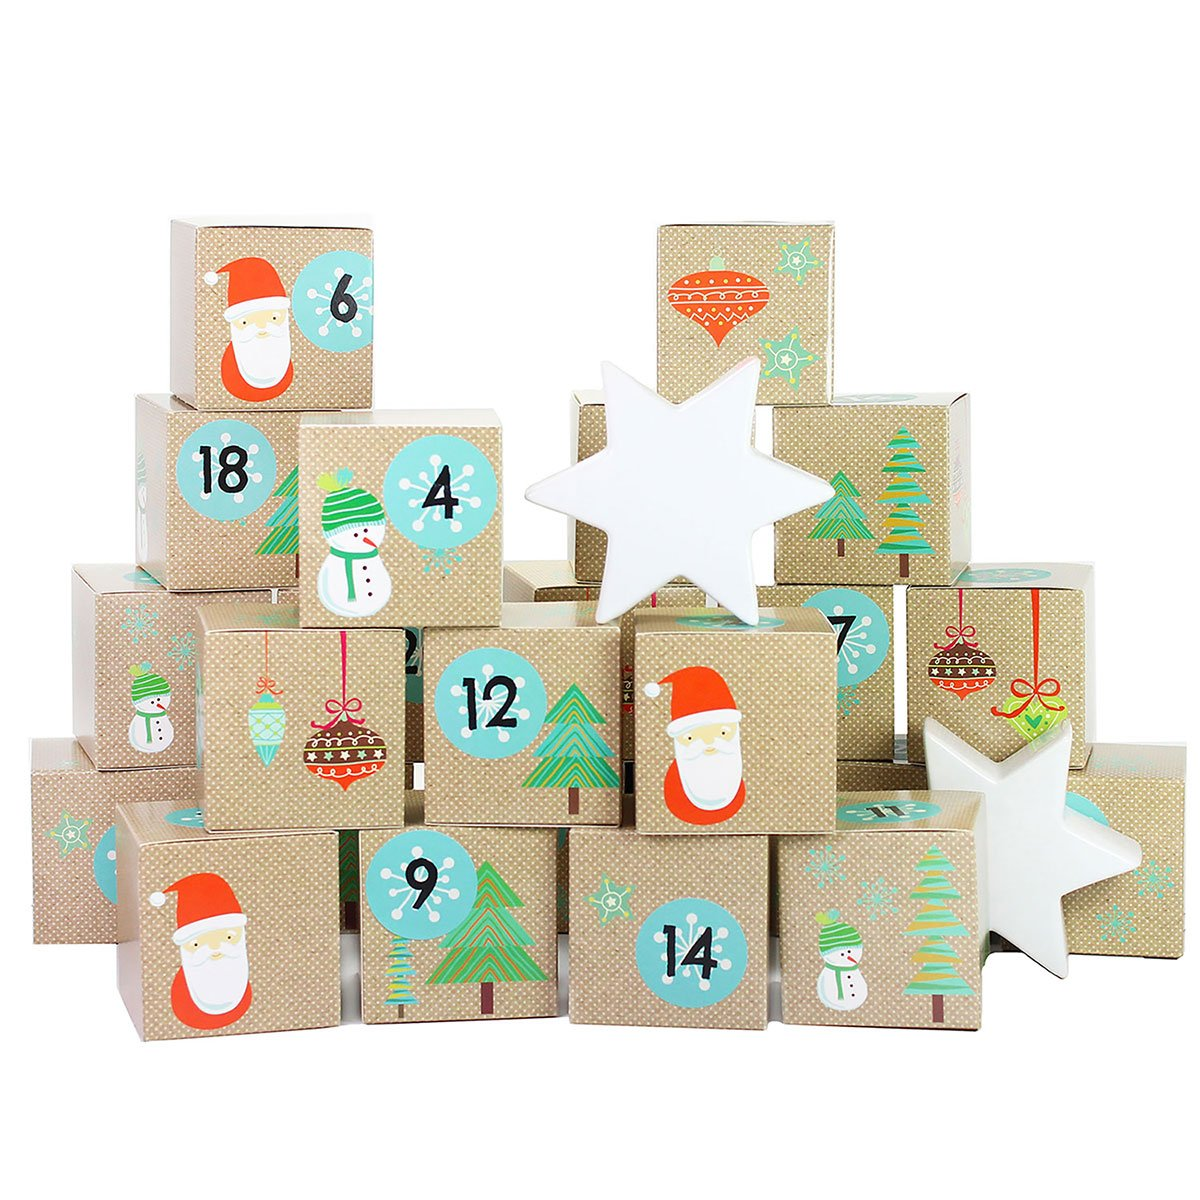 DIY Advent CalendarSet - Santa Claus - 24 Boxes for making and filling